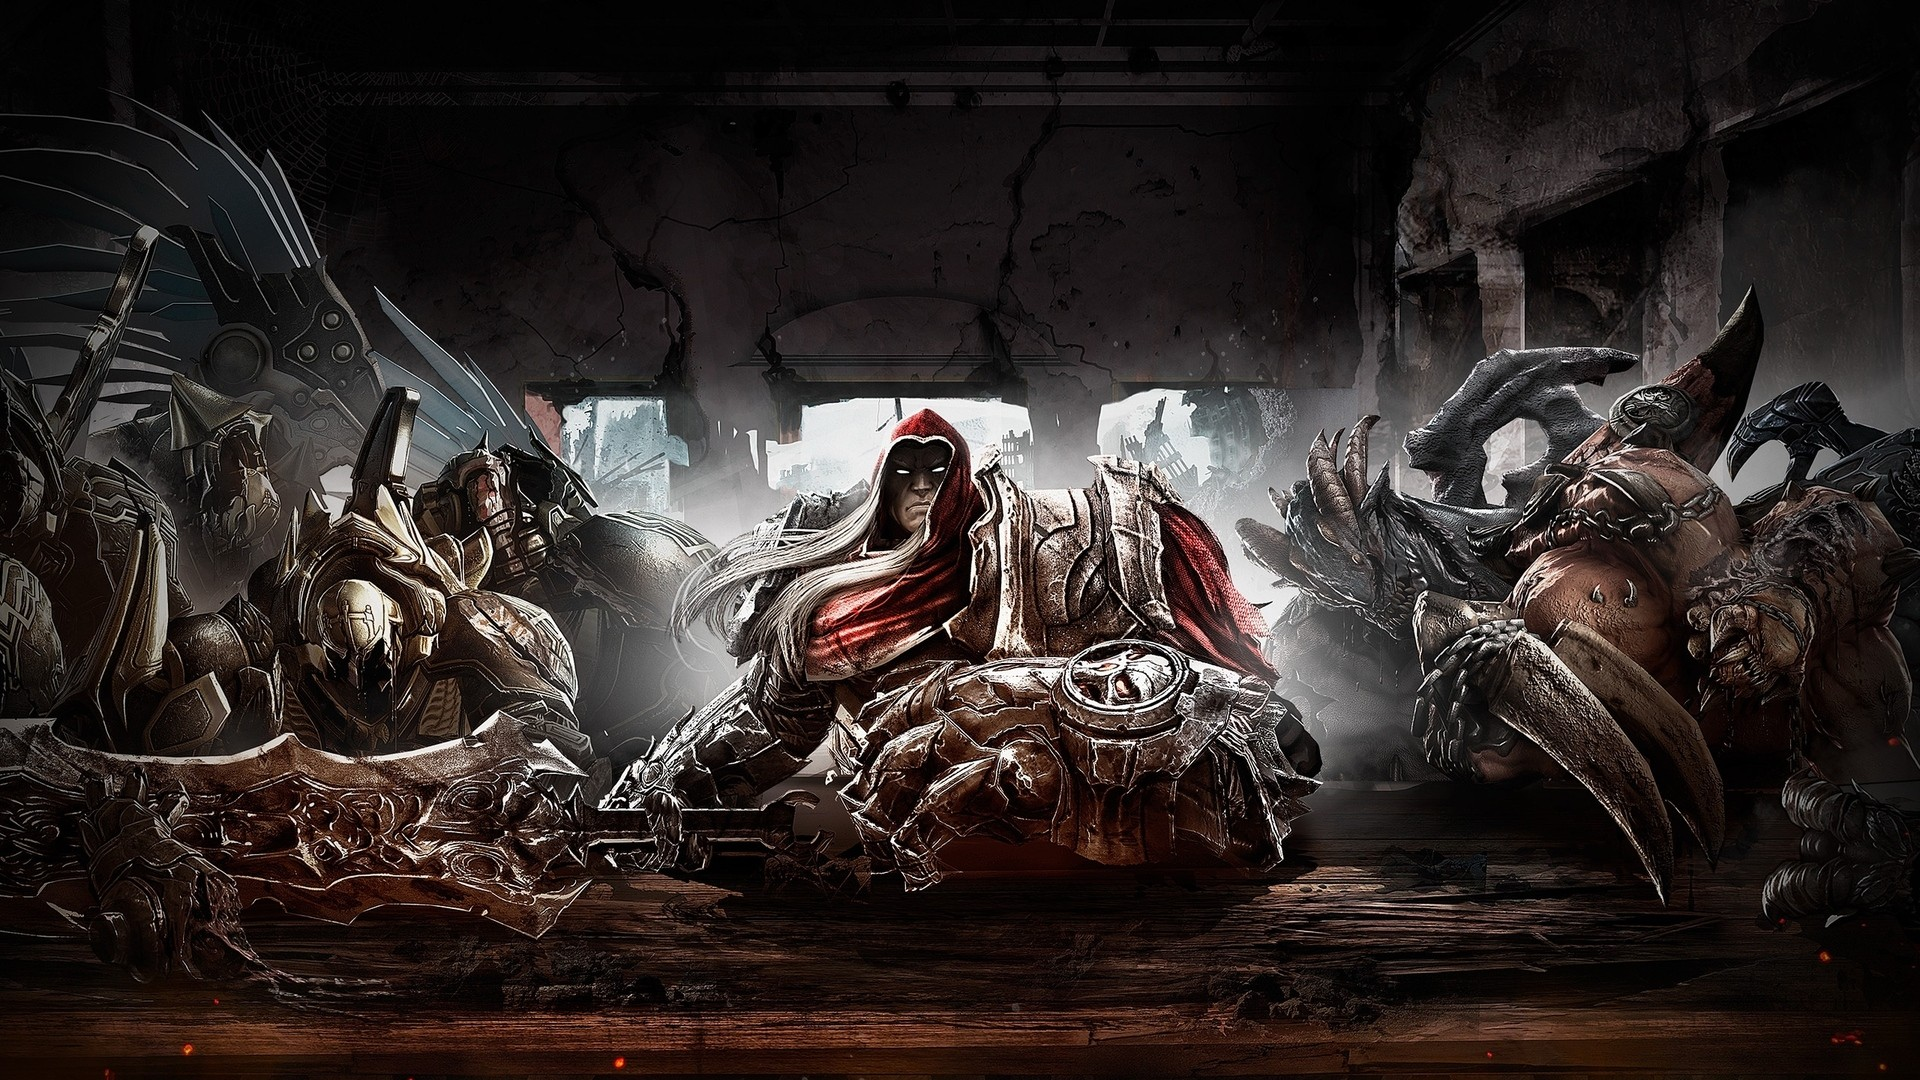 fantasy darksiders wallpapers wallpaper images 1920x1080 1920x1080